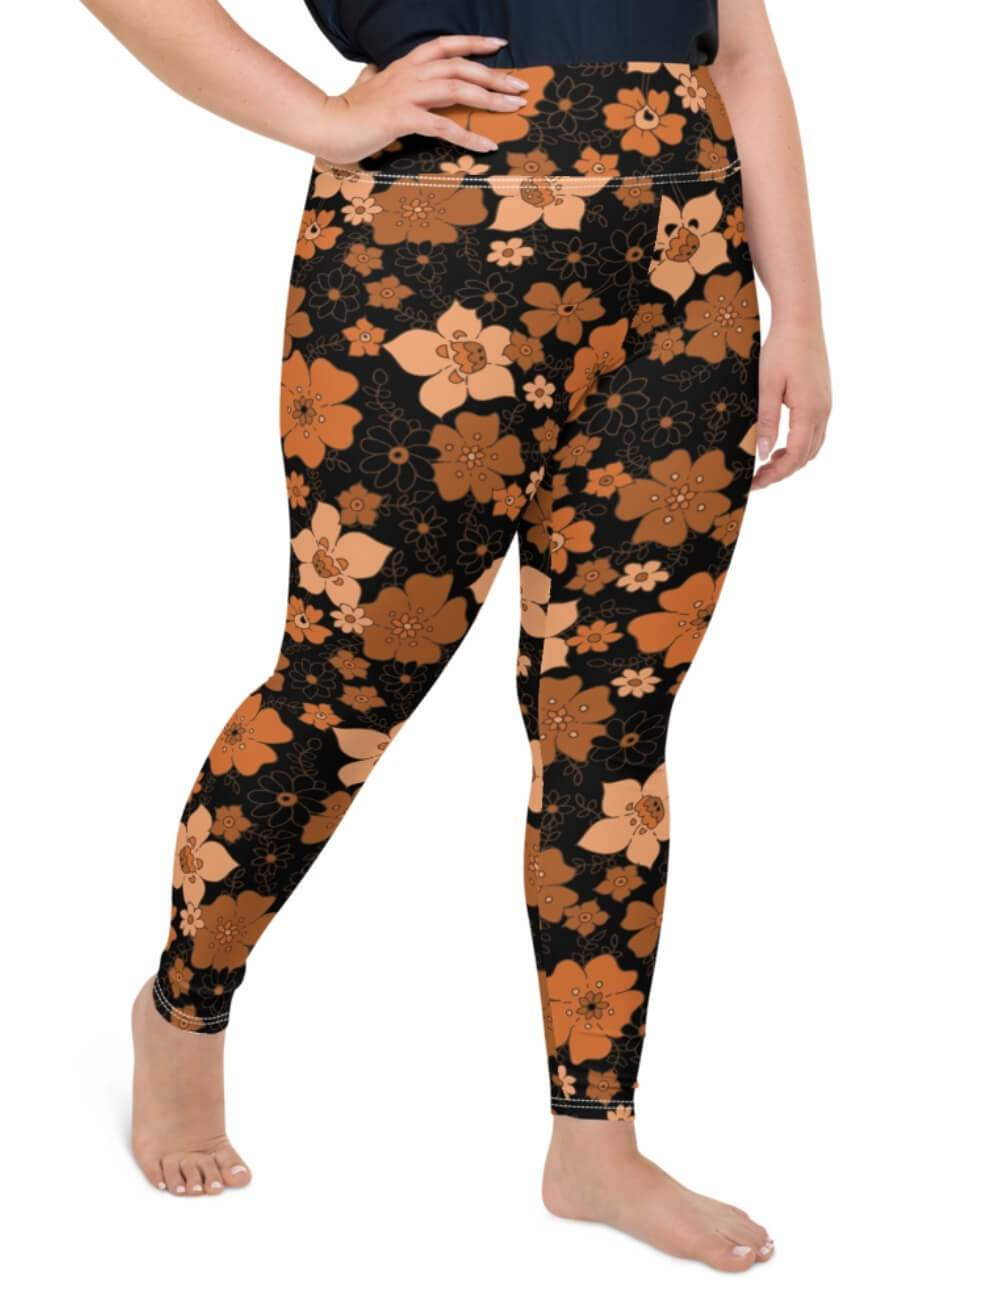 Plus Size Midnight Garden Leggings - Boho Buys